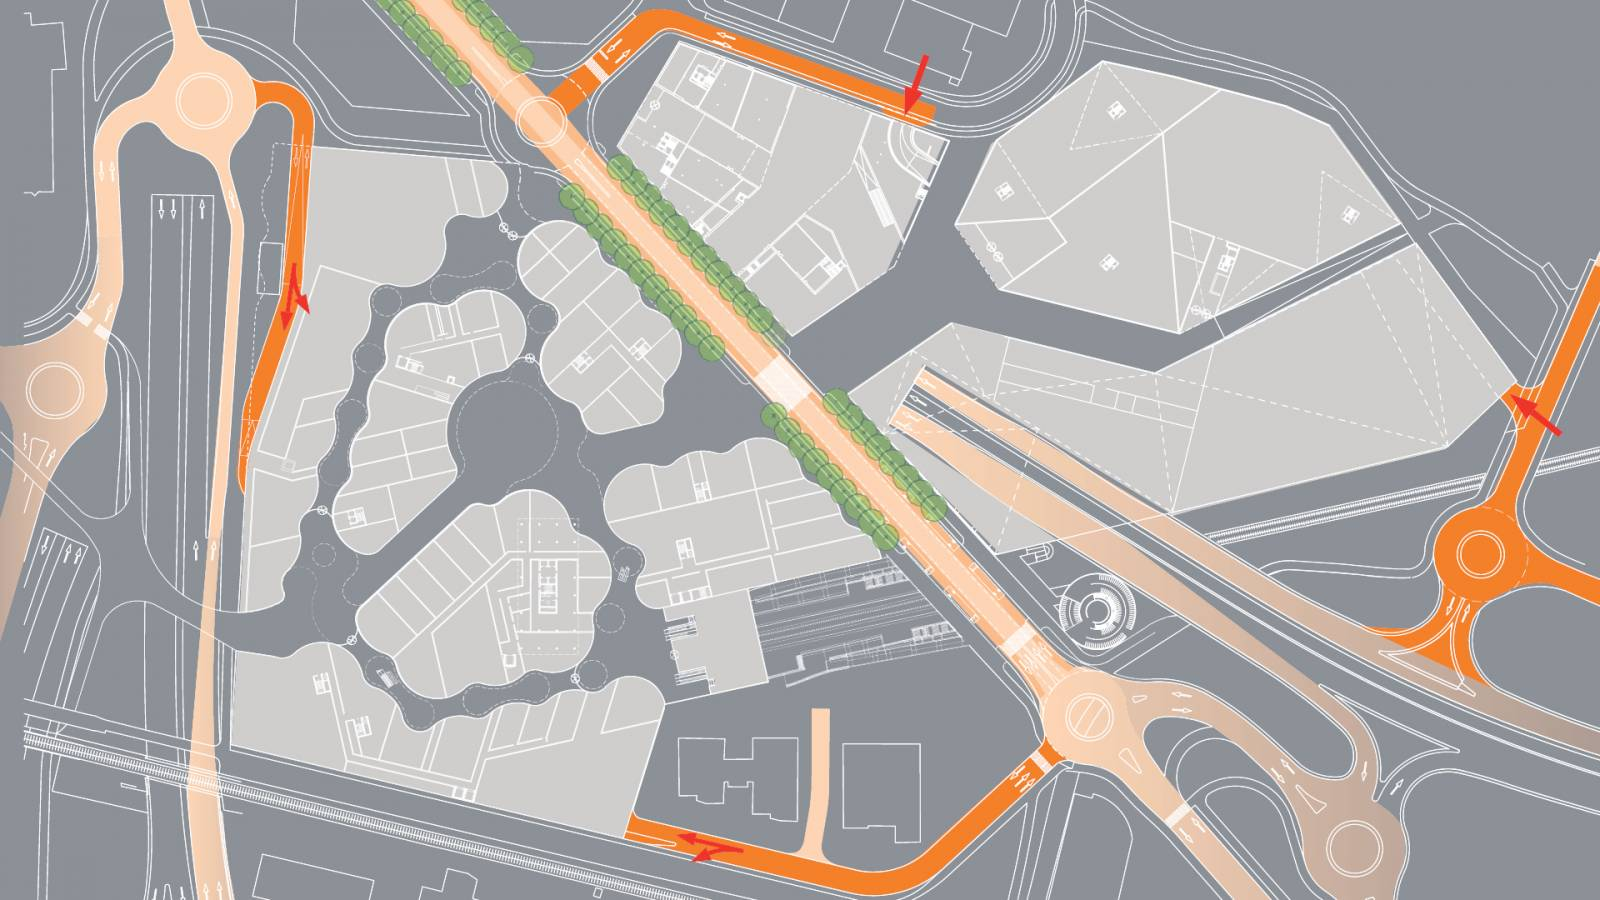 ARCHITECTS_6_ROADS - Økern Centre - SPOL Architects